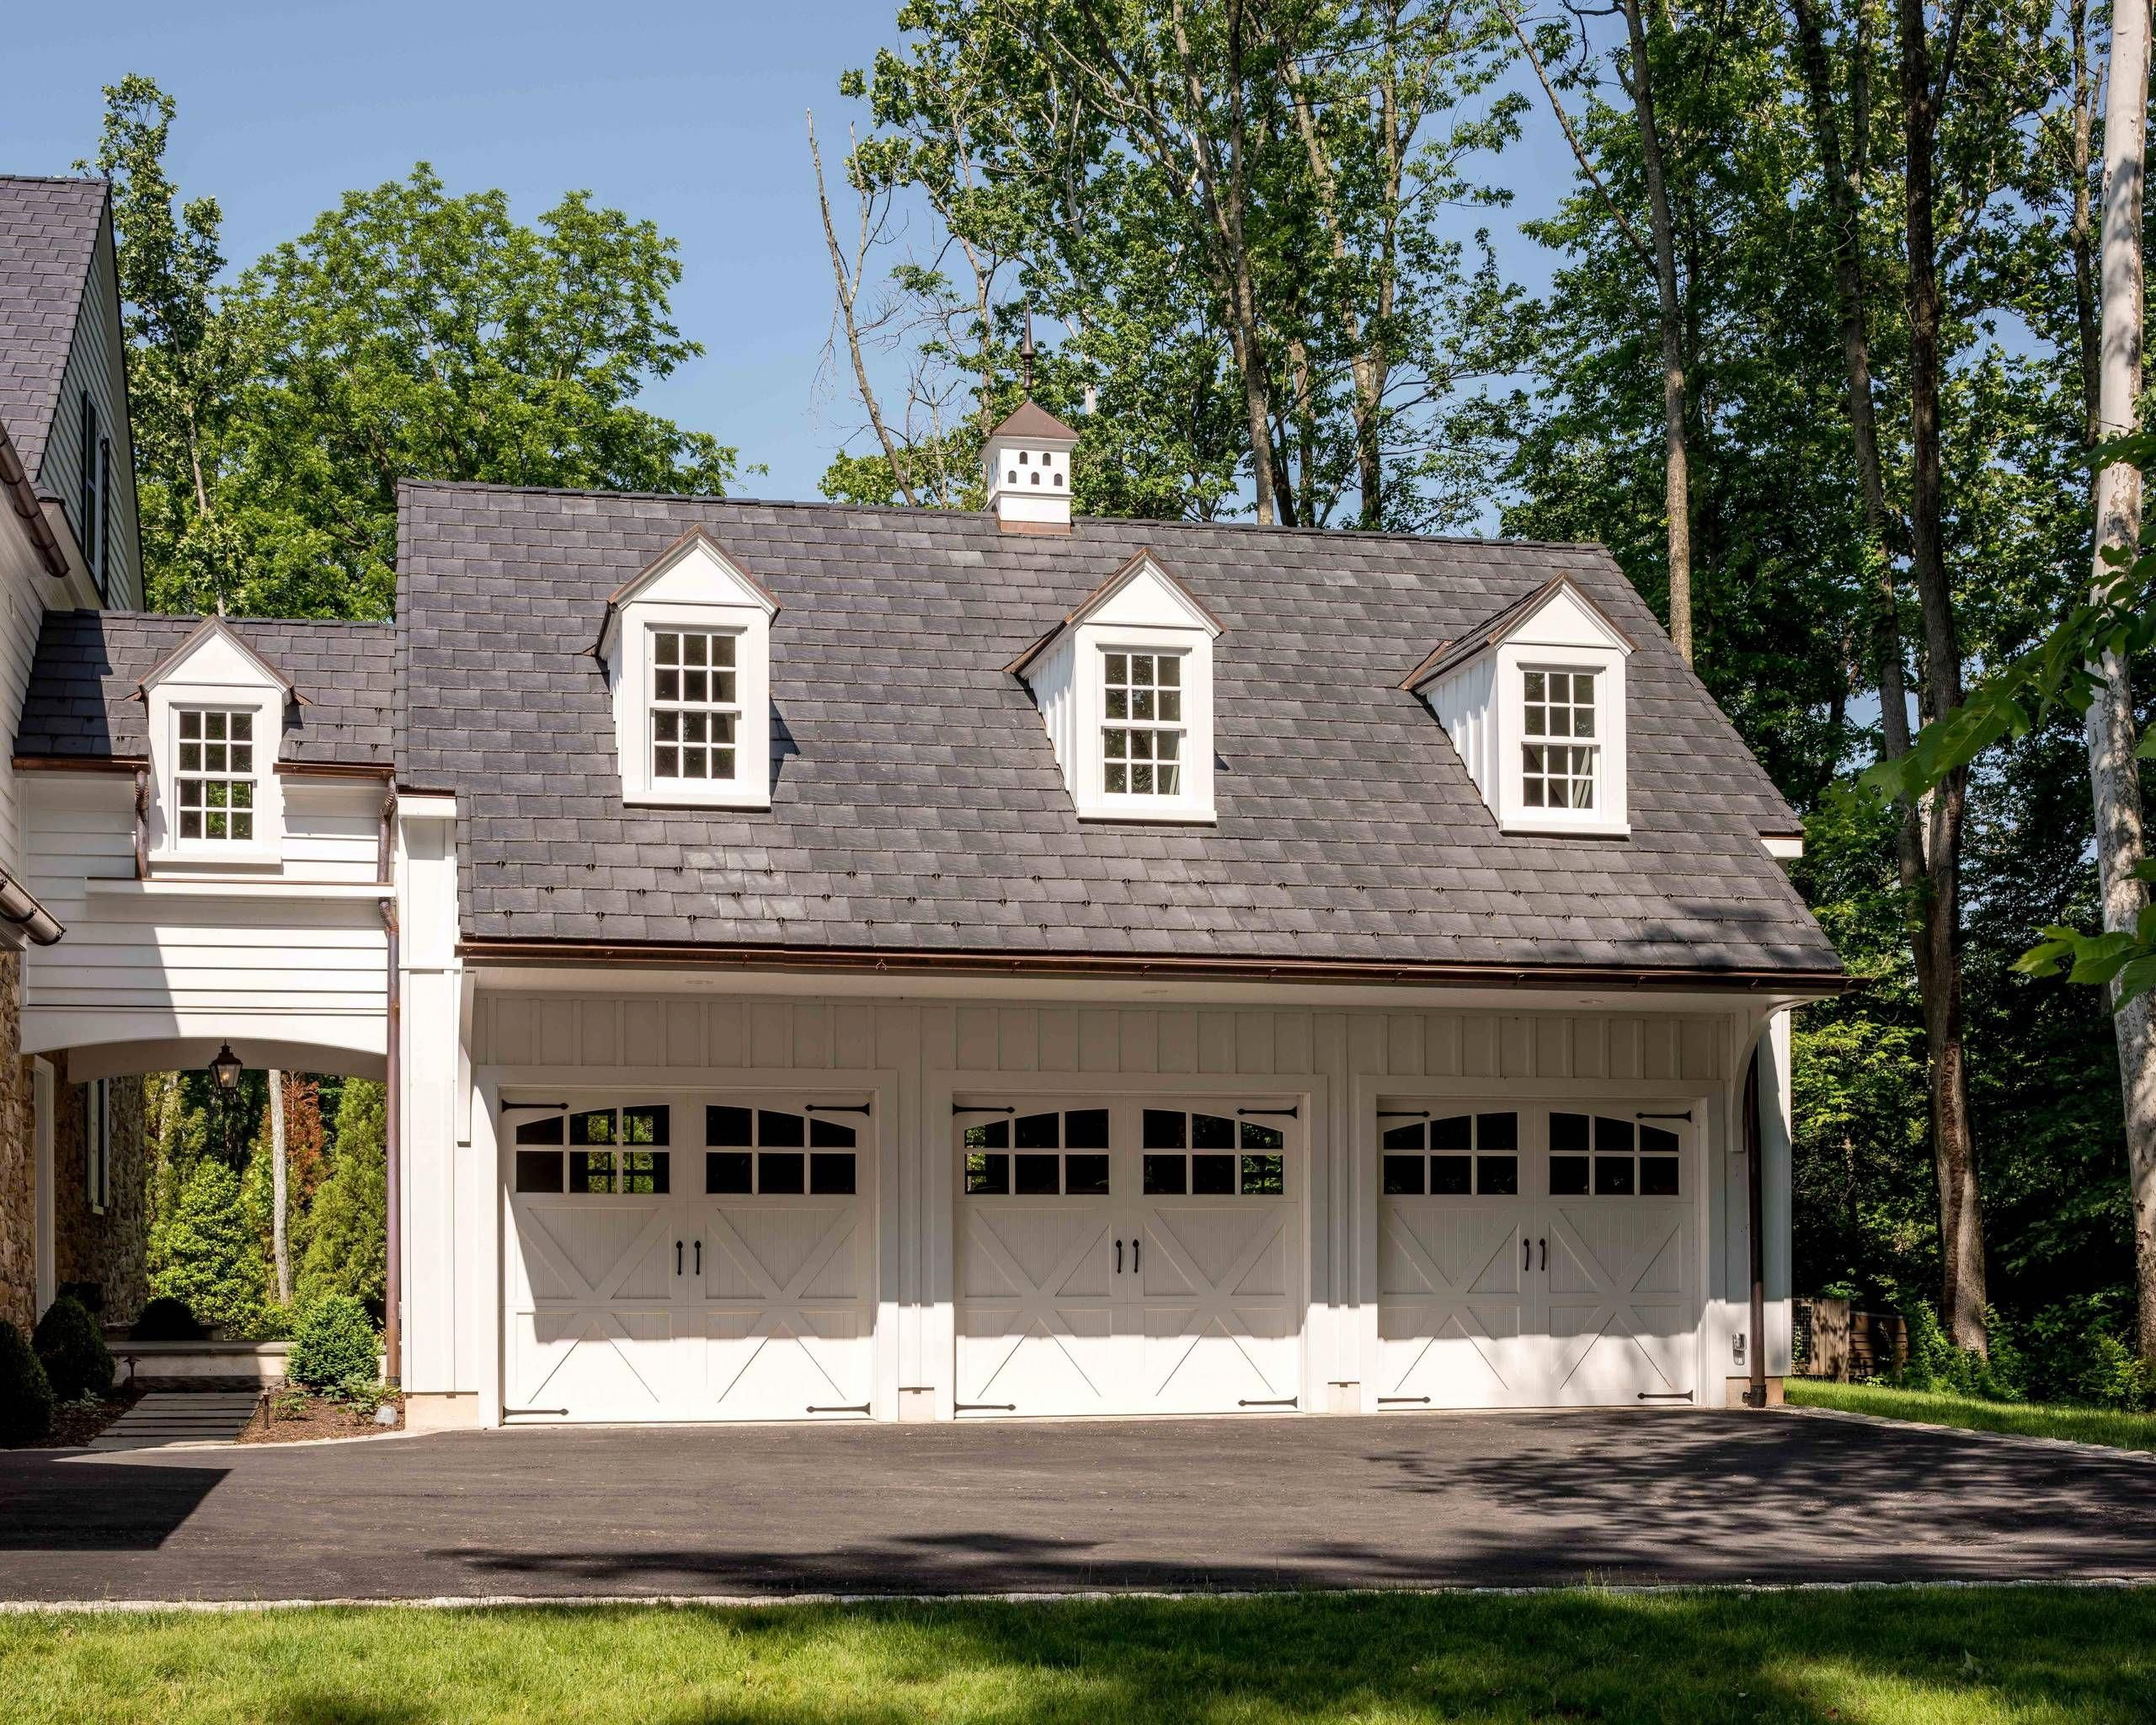 Check Out This Refreshing Double Garage Doors What An Original Project Doublegaragedoors Detached Garage Designs Carriage House Plans House Styles